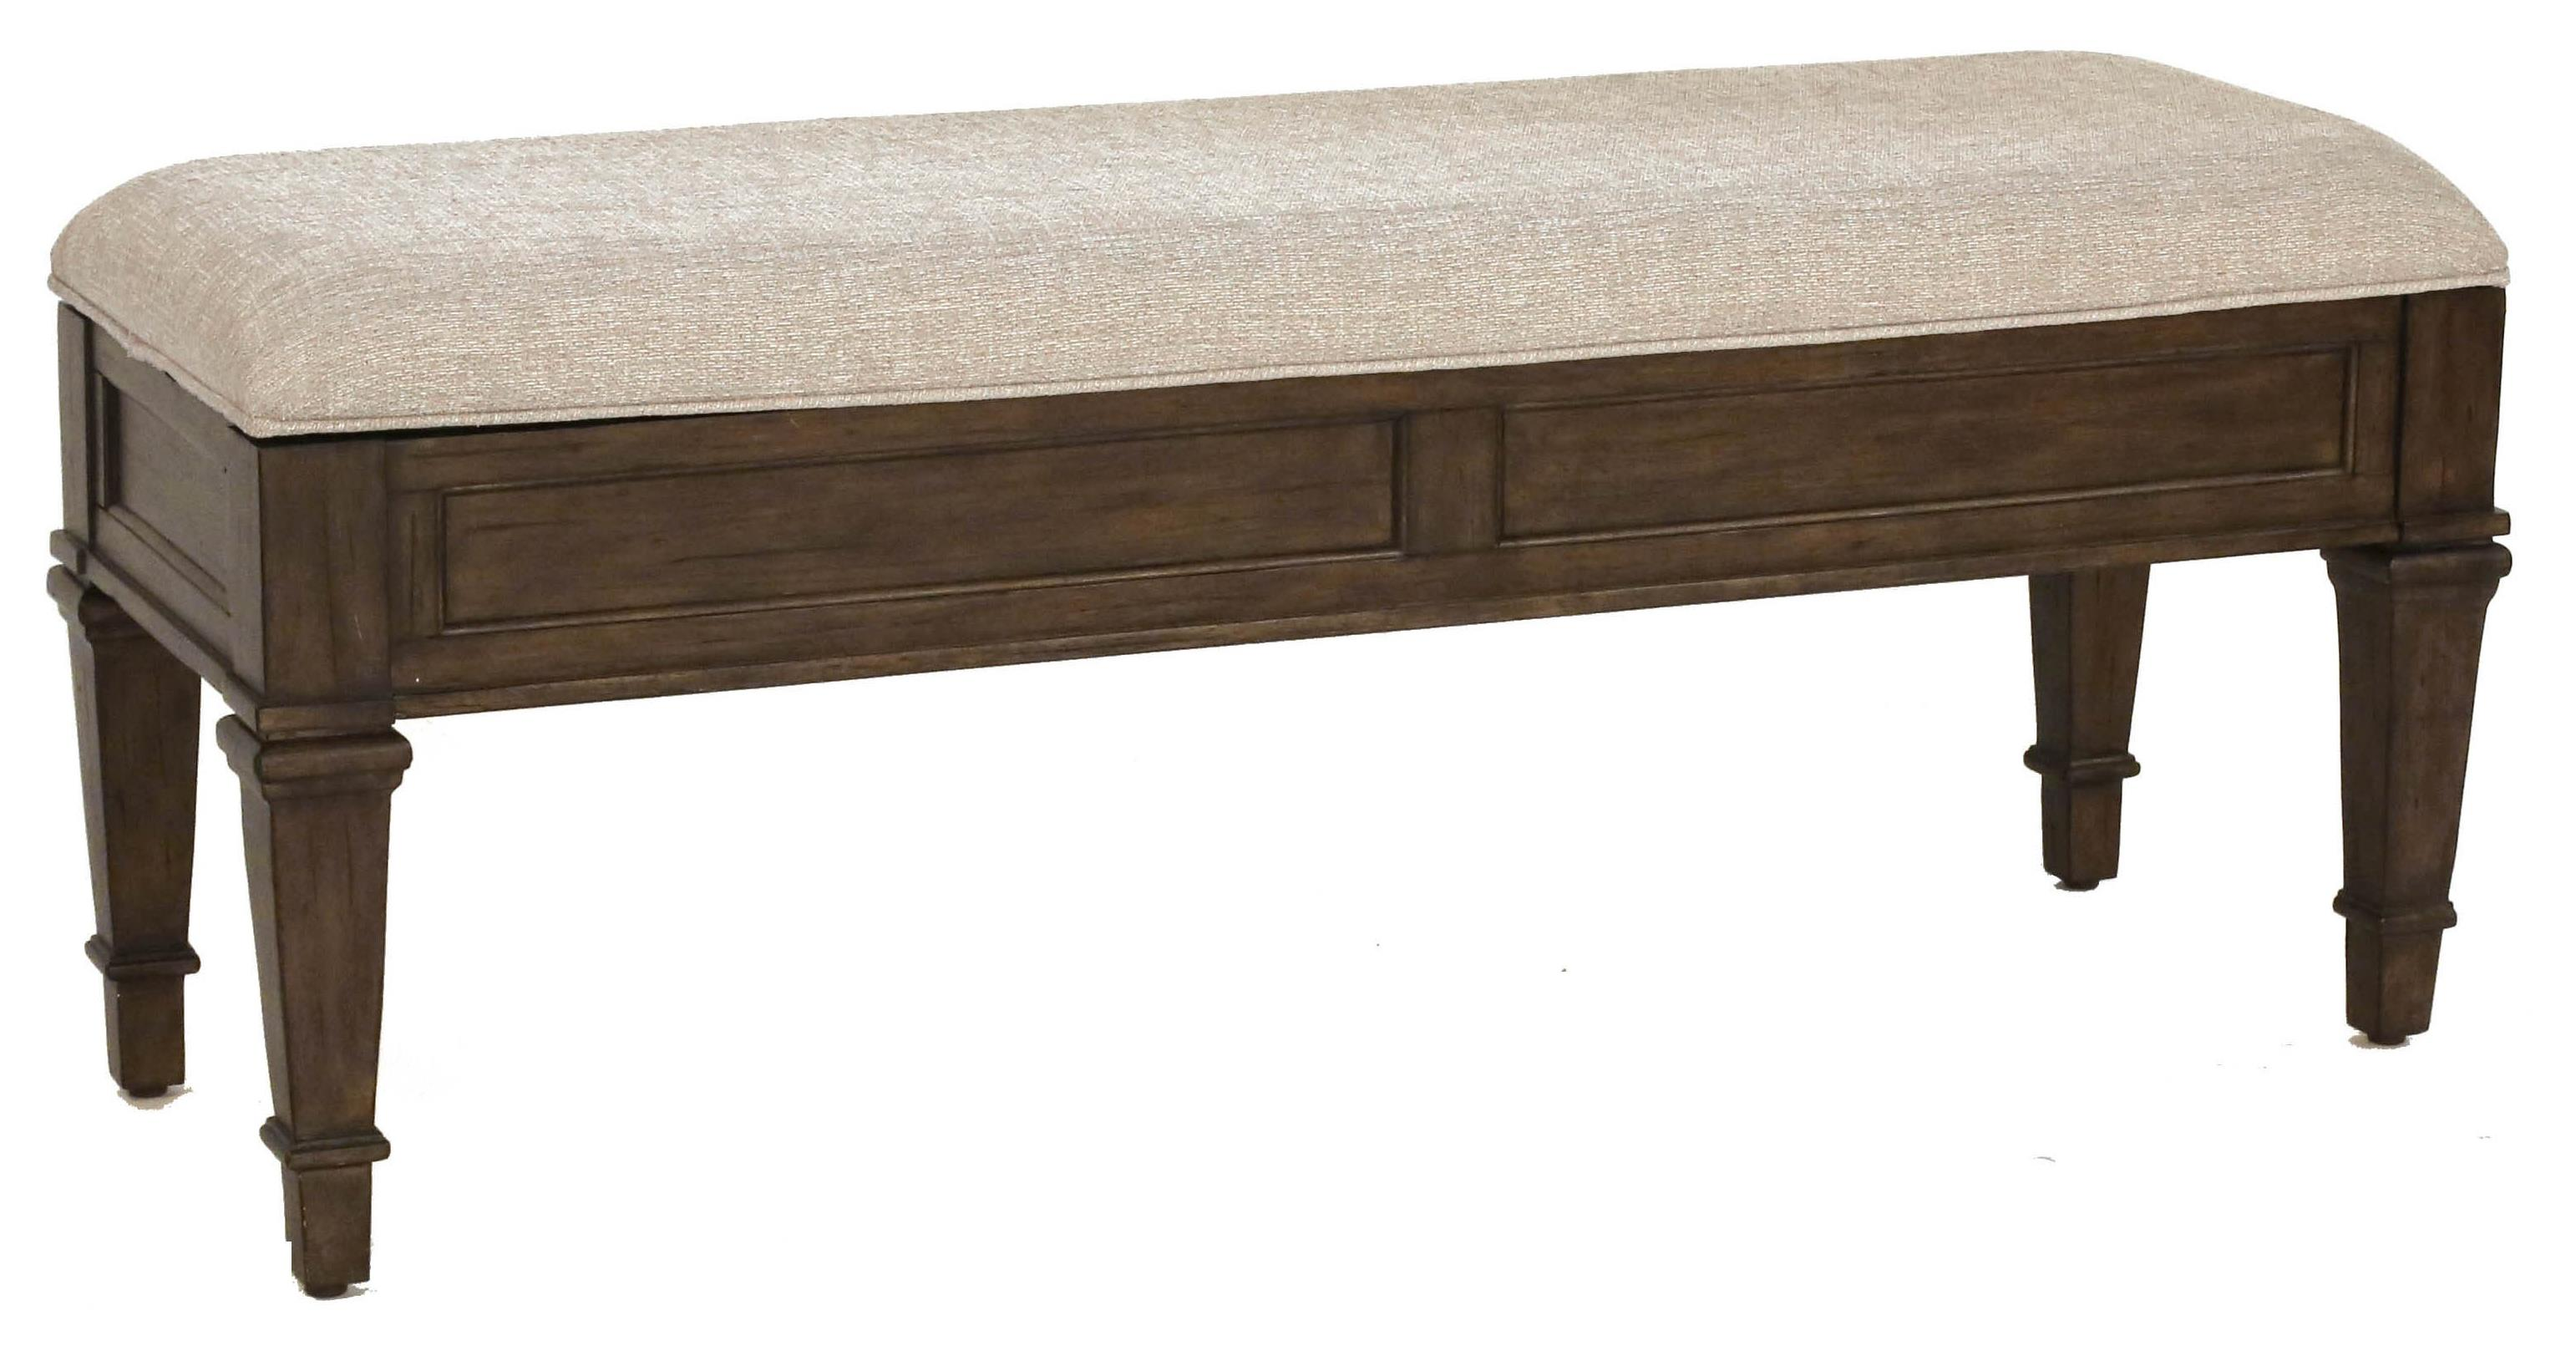 Aamerica Gallatin Solid Mahogany Upholstered Storage Bench